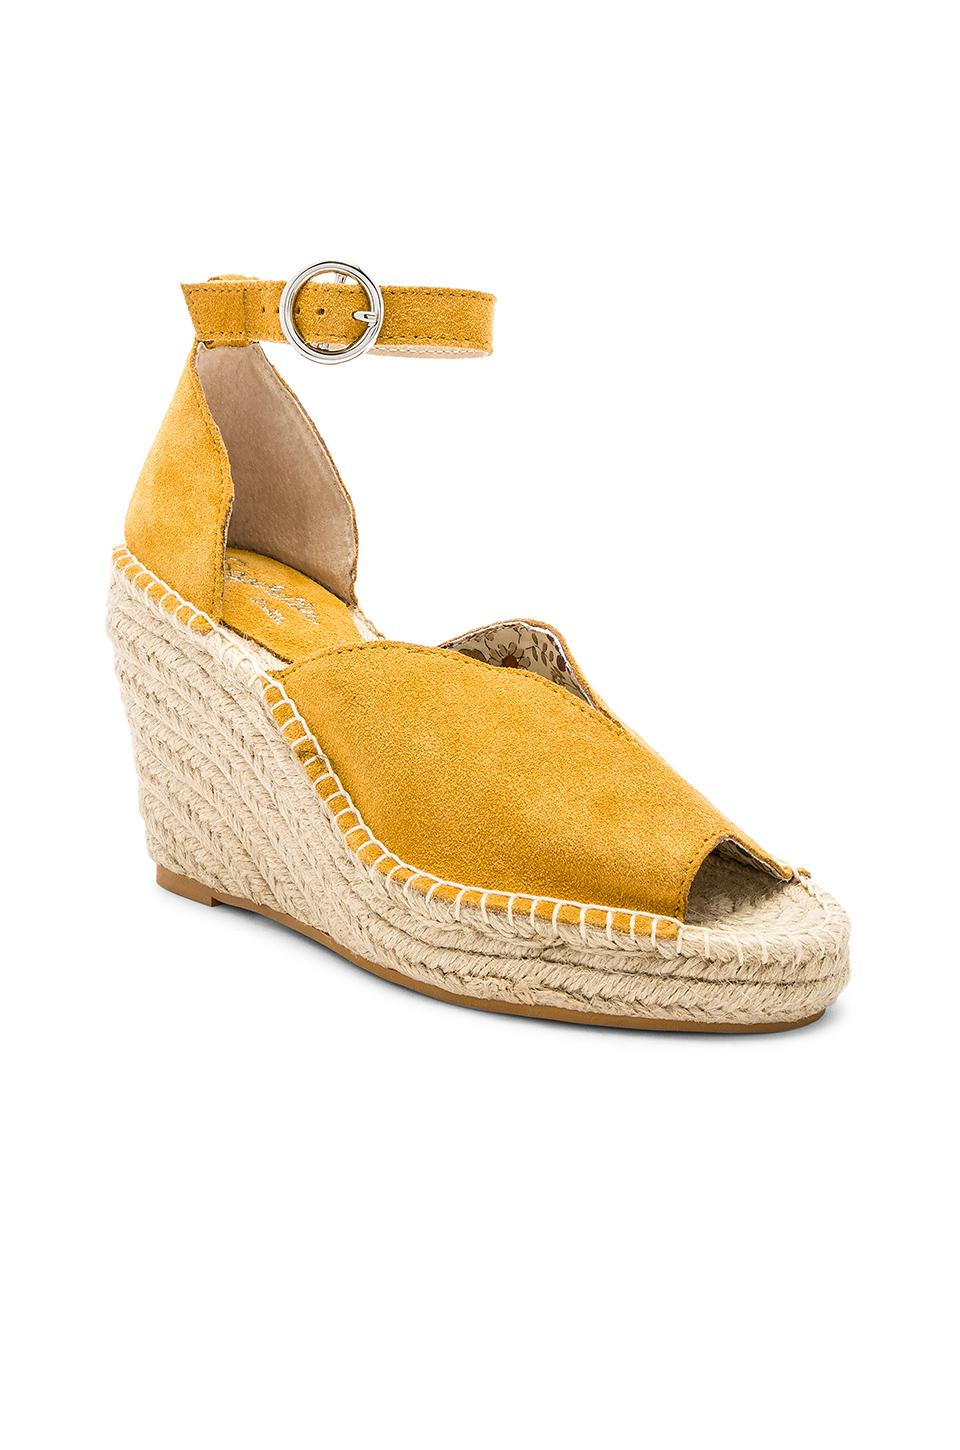 02c1a923dd1 Lyst - Seychelles Collectibles Espadrille in Yellow